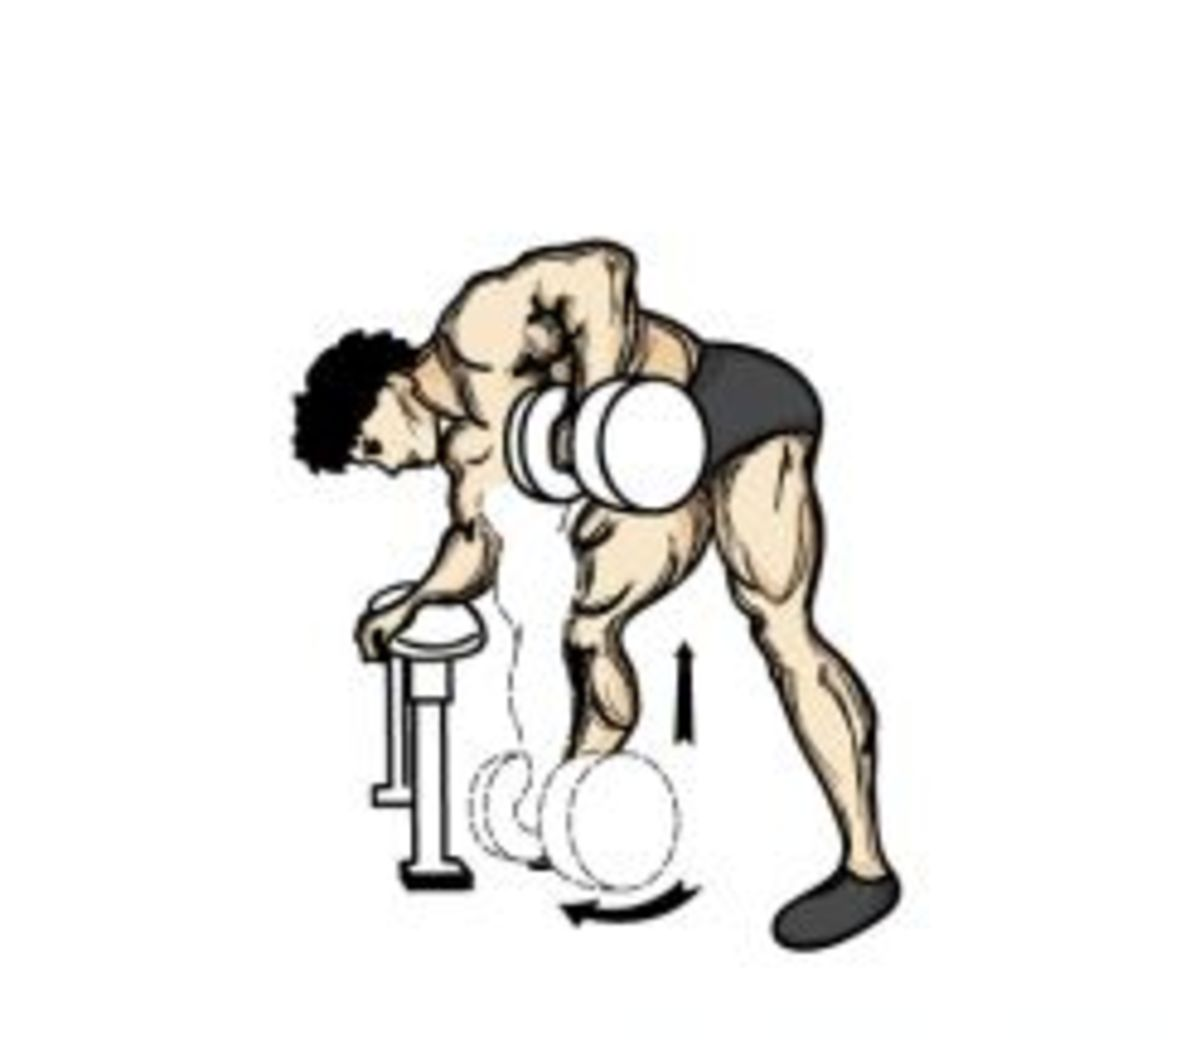 Good form for One Arm Dumbbell Row.